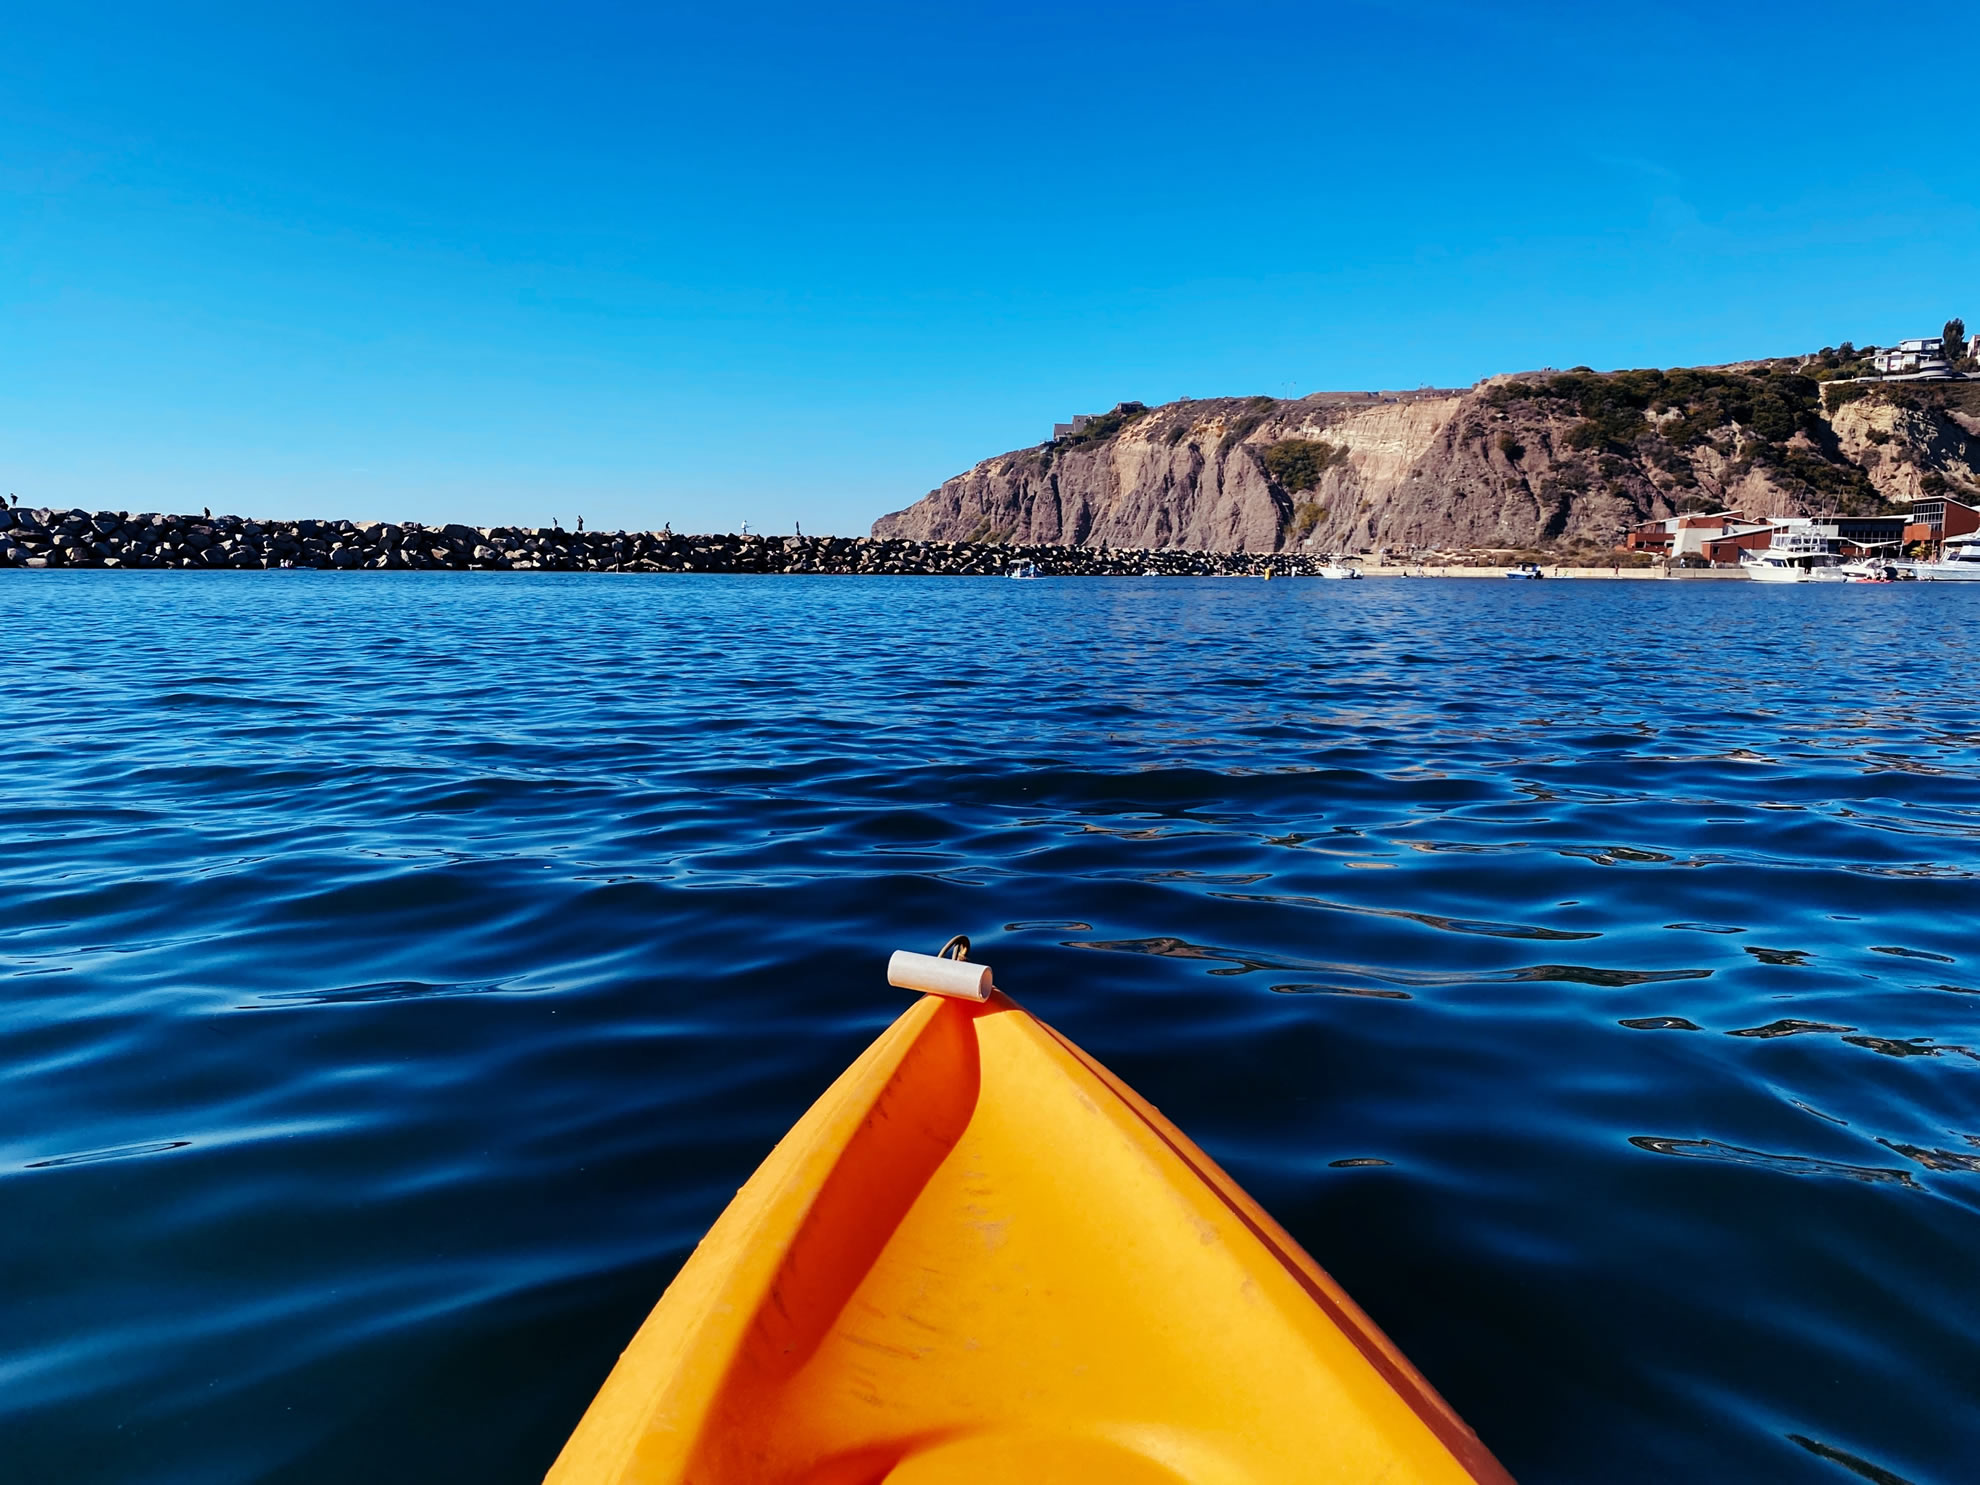 Photo of the front of an orange kayak on the ocean with a blue sky and rocks ahead